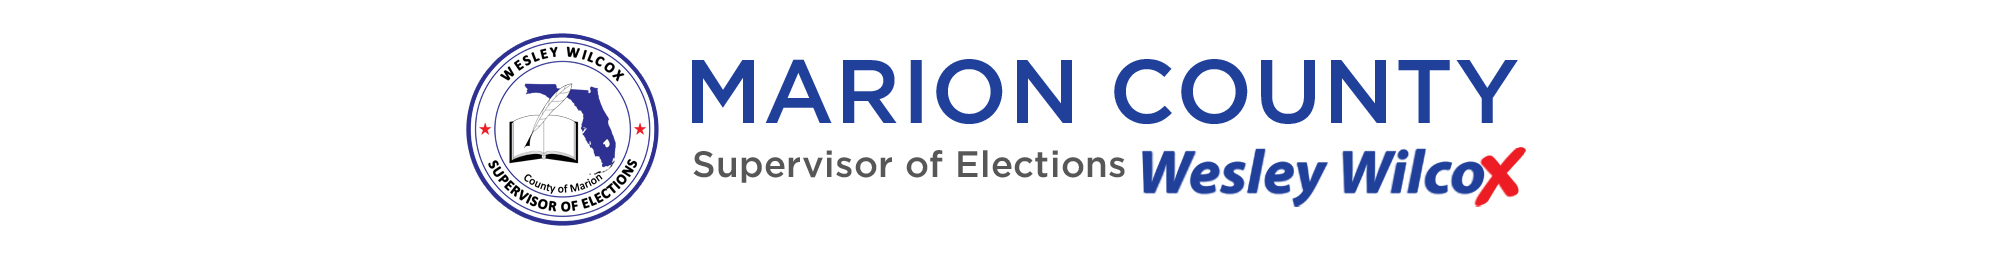 Marion County Supervisor of Elections - Wesley Wilcox